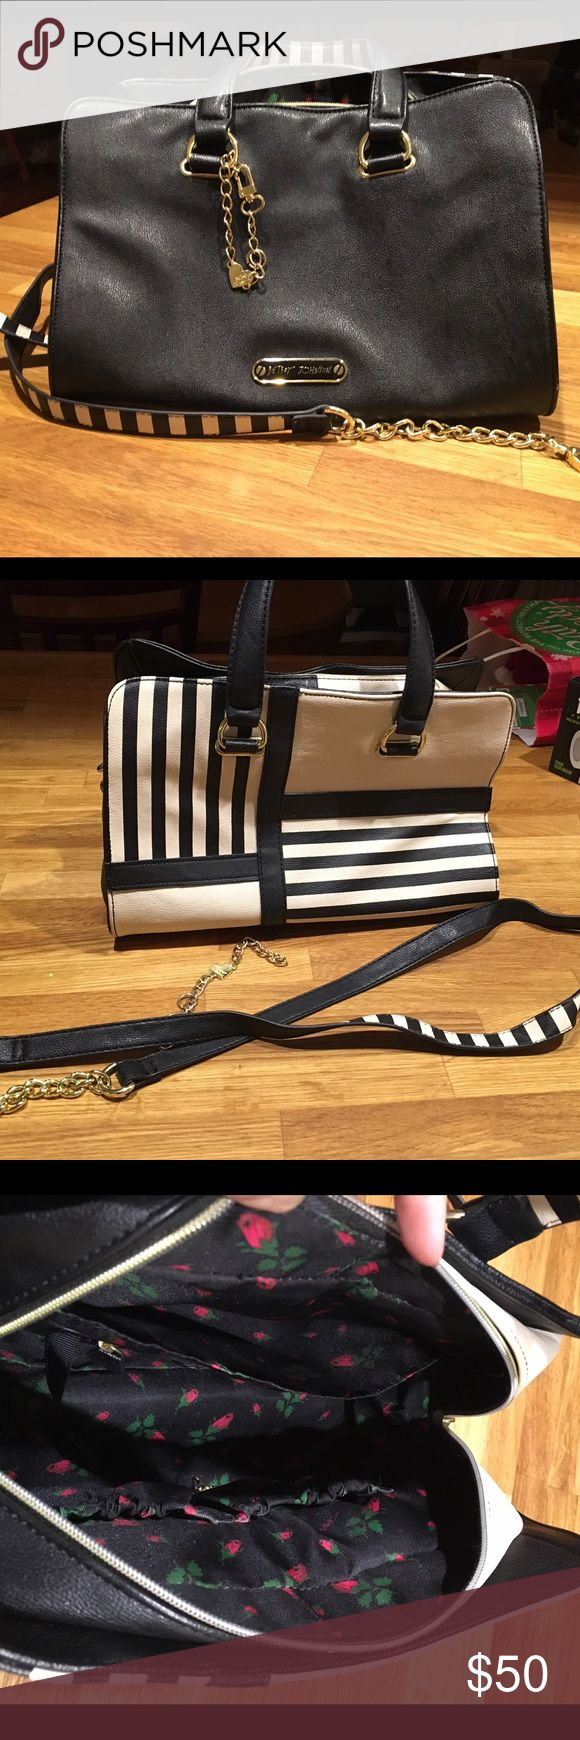 """Betsy Johnson satchel Cream and black poly Betsey Johnson satchel purse.  Has handles and removable strap with 4"""" gold chains at either end.  Long enough for cross-body.  Inside is black with red roses.  GUC.  13"""" wide X 8"""" tall X 8"""" deep.  Ask any questions.    Ask me any questions. Betsey Johnson Bags Satchels"""